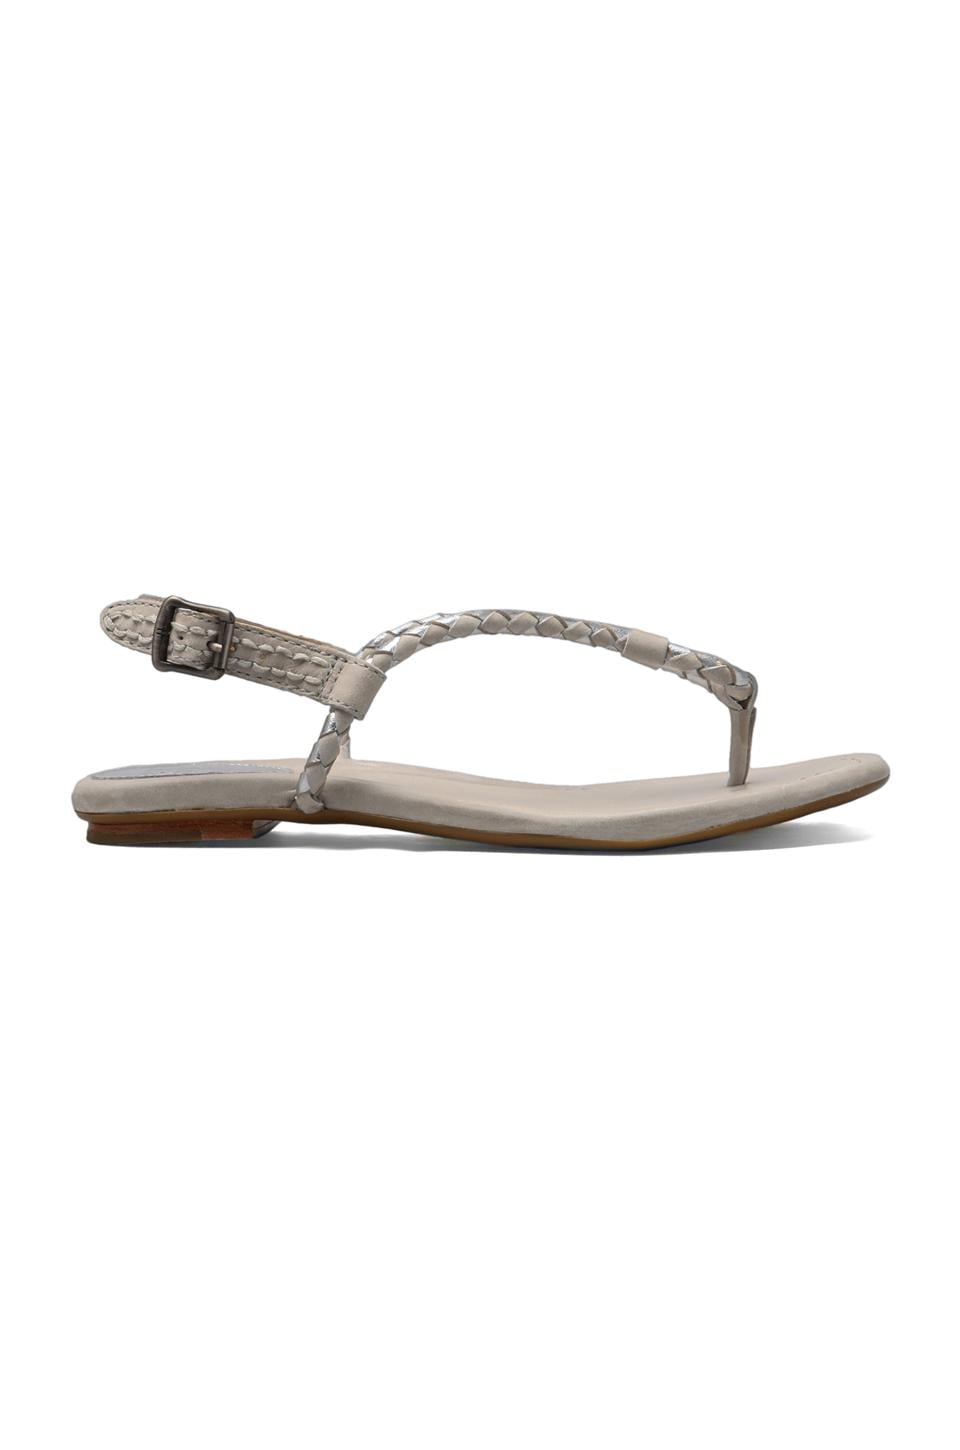 Frye Madison Braid Sling Sandal in Silver Multi